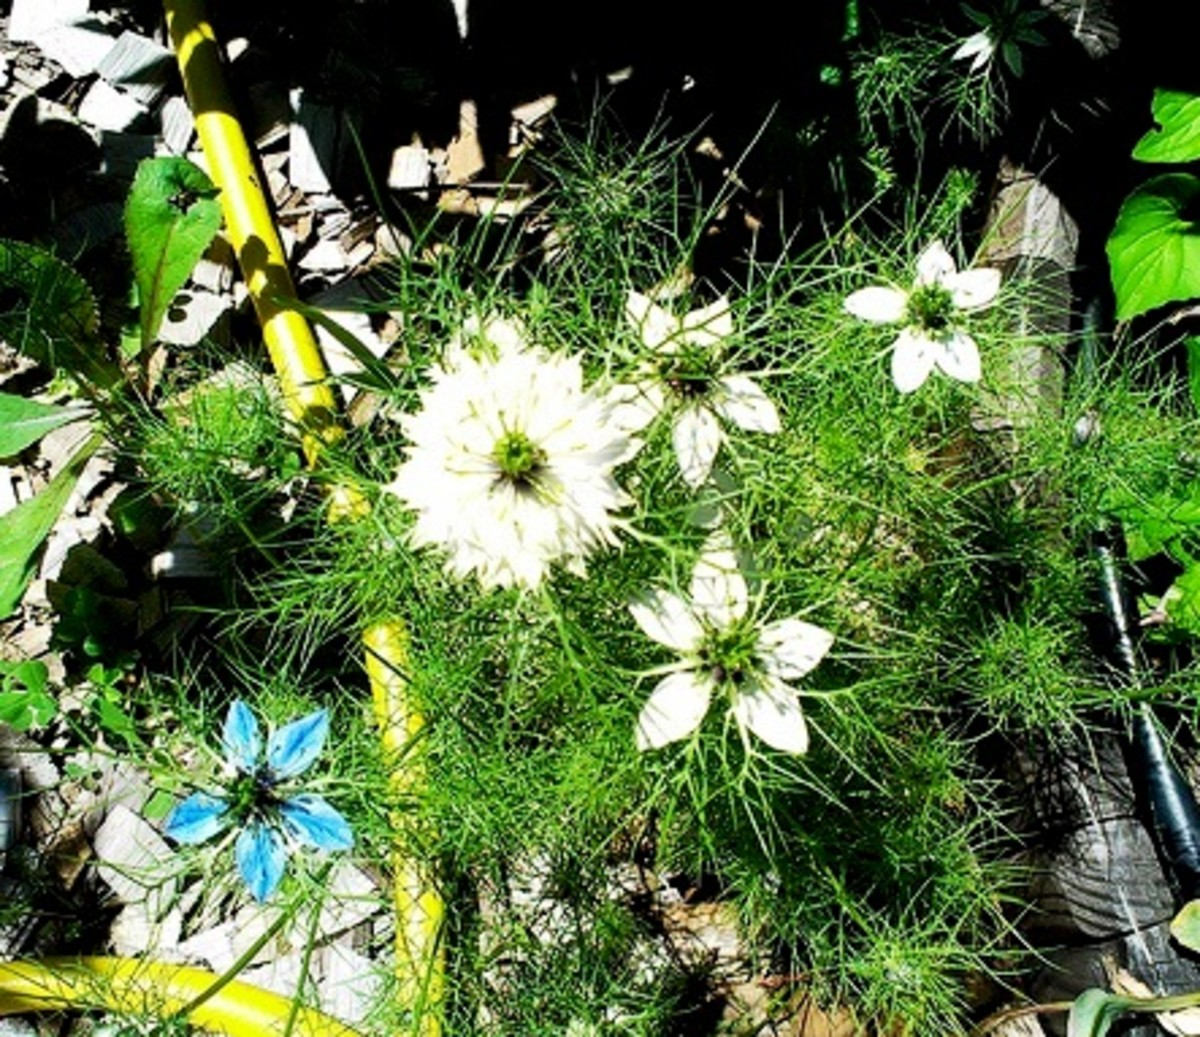 Love-in-a-Mist blooms in white/blue mix